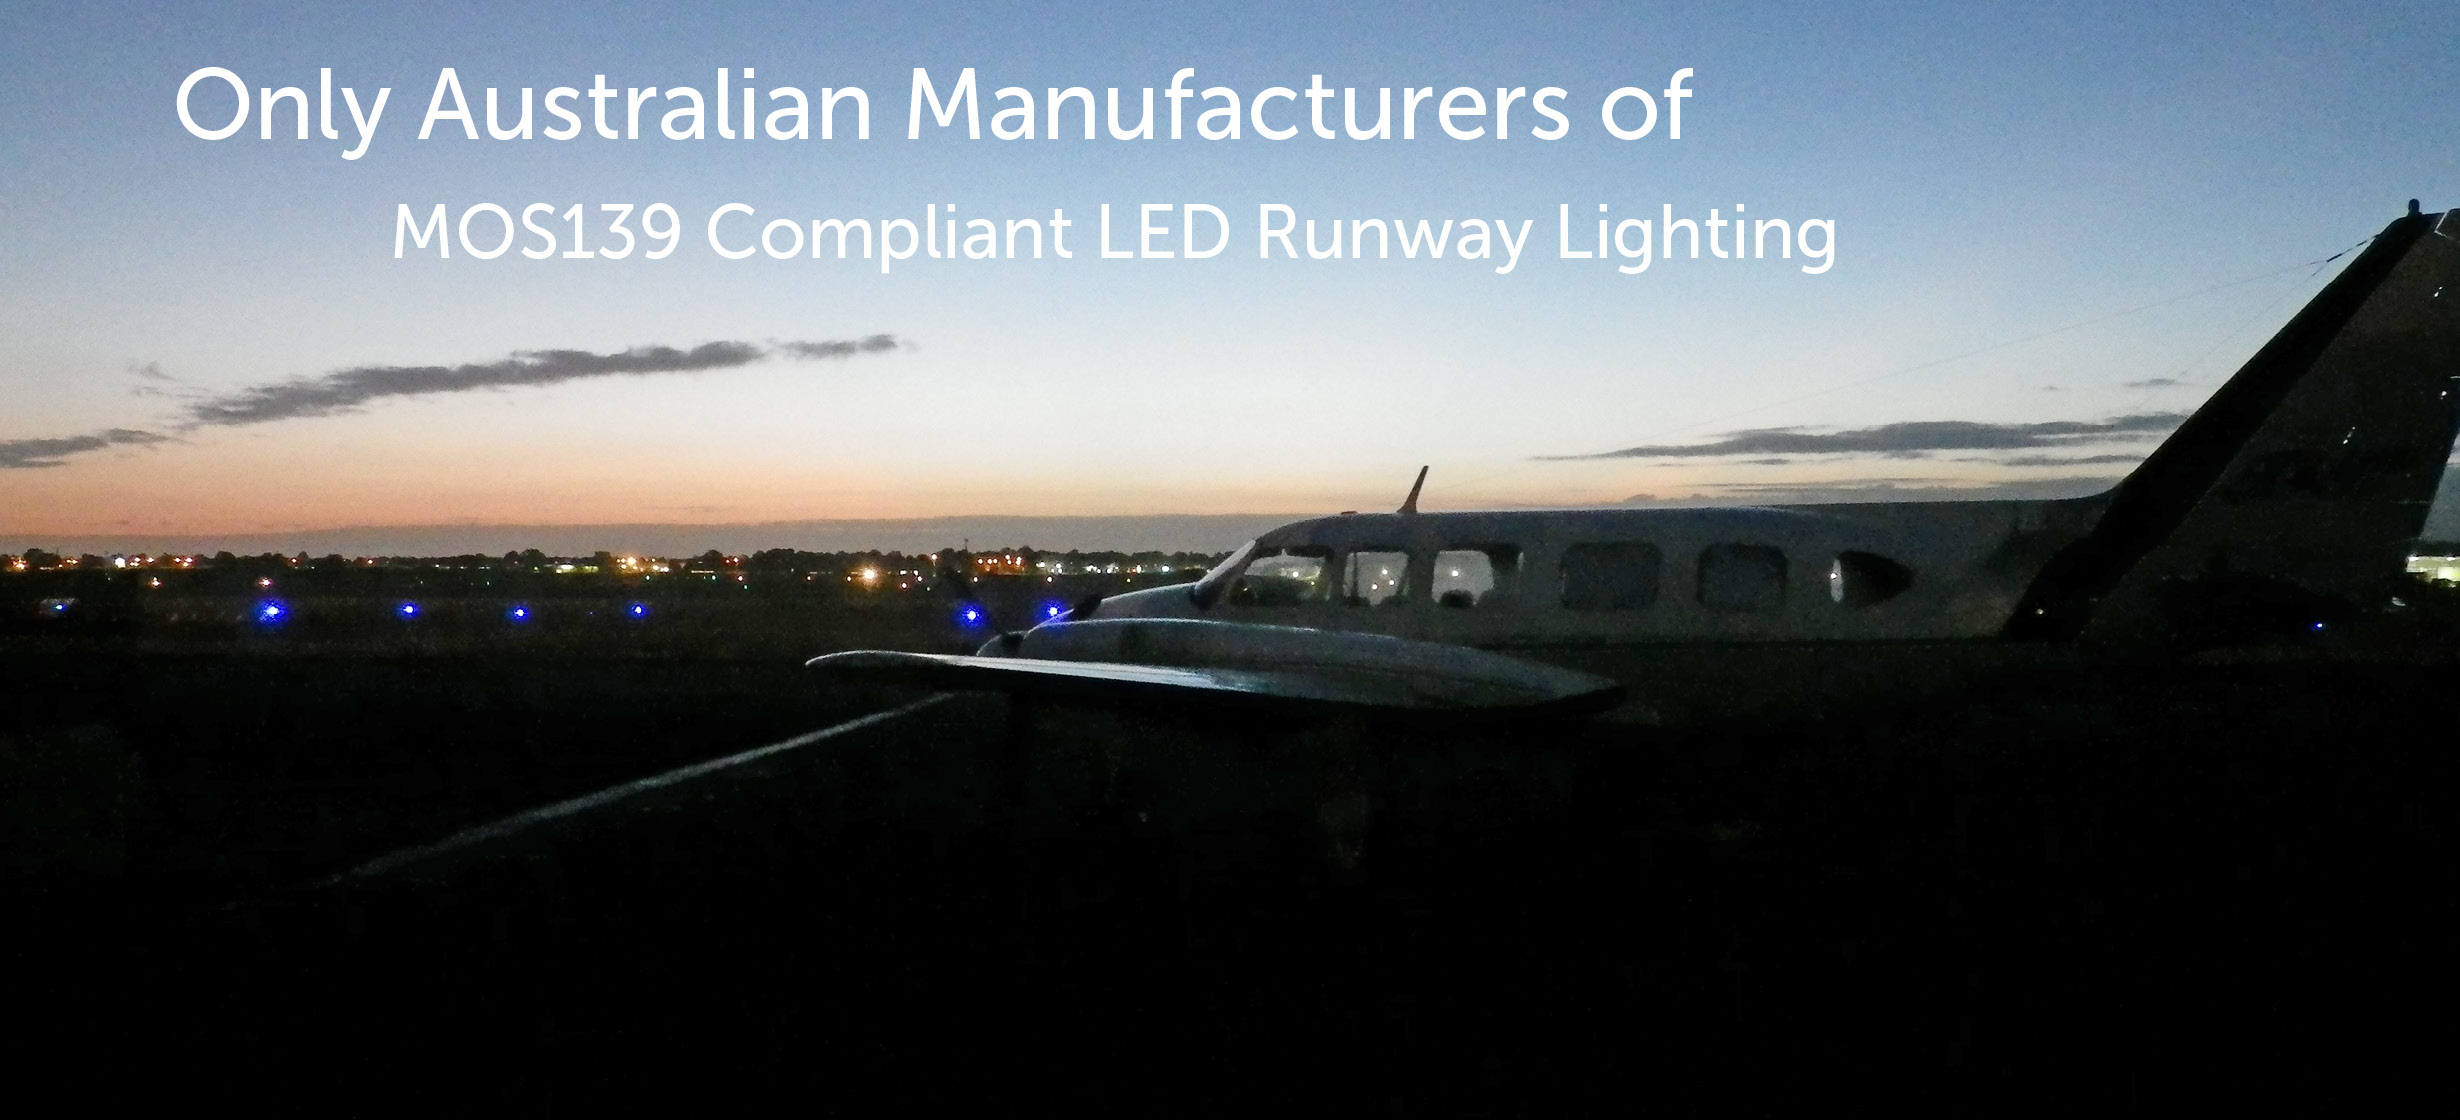 MOS139 Compliant LED Runway Lighting